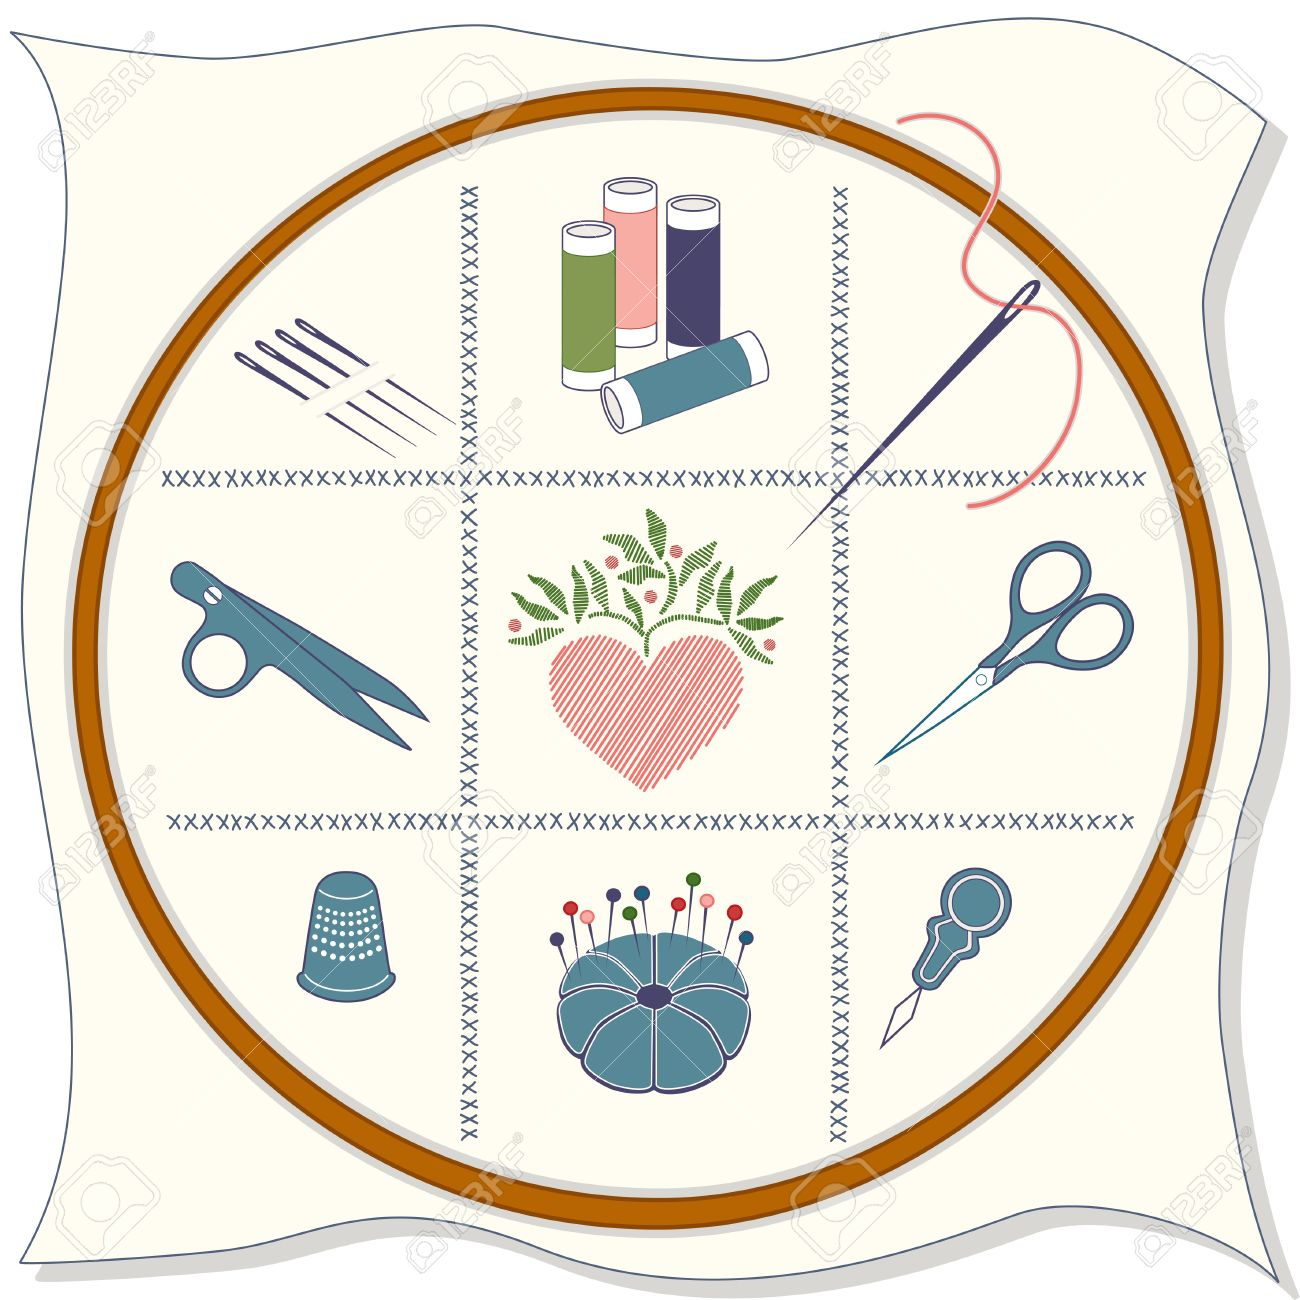 Embroidery Icons: wood hoop, fabric, cross stitch, sewing needles, spools of threads, thread clips, stitched heart, embroidery scissors, thimble, pins, pincushion, needle threader. Stock Vector - 12392234